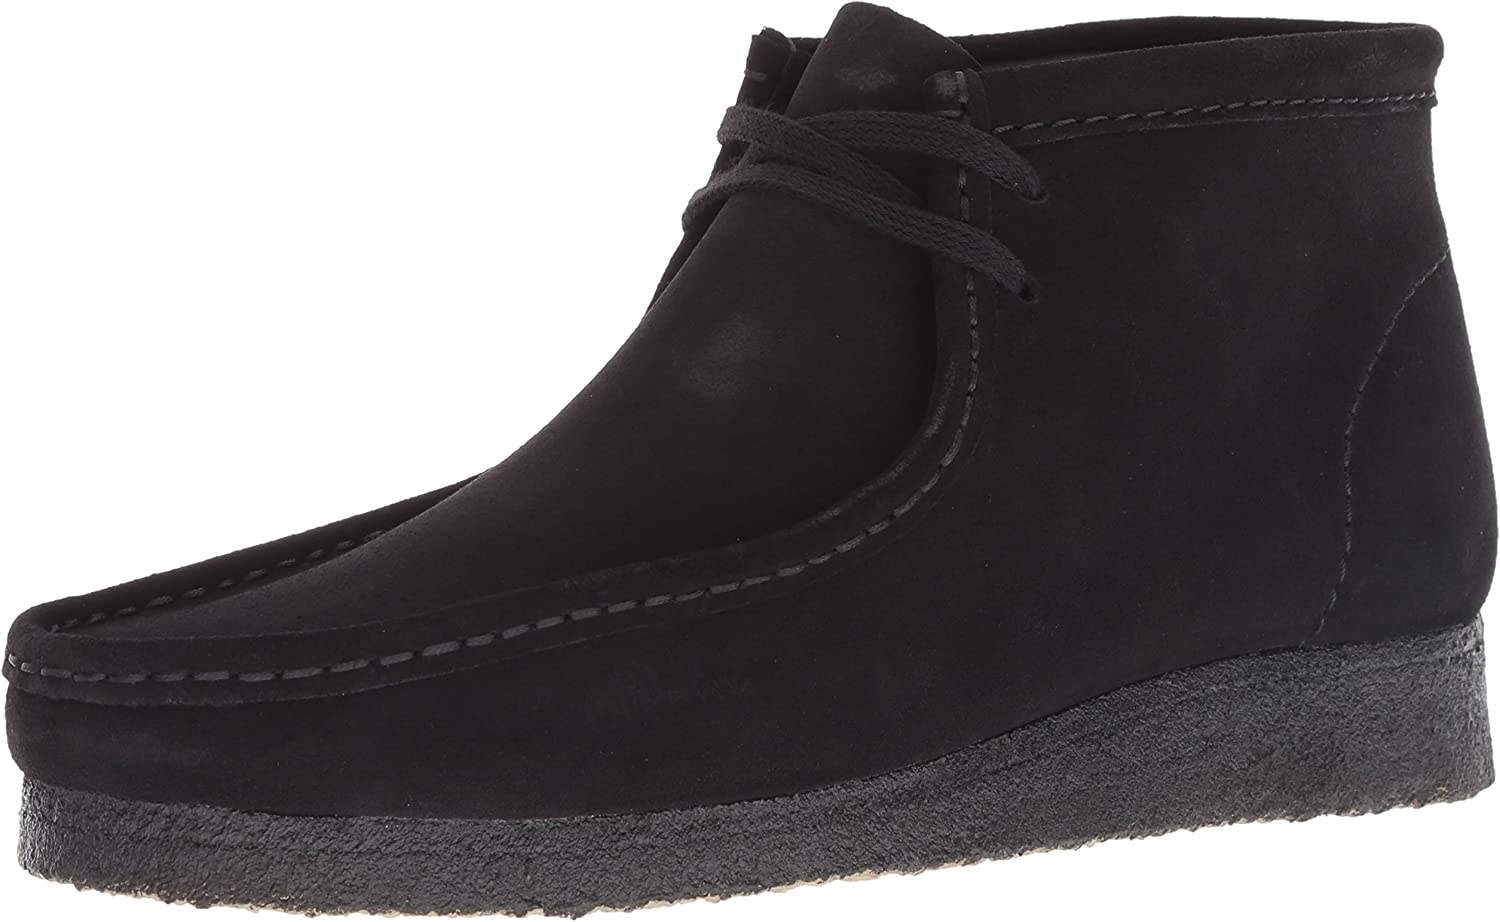 Clarks Men's Wallabee Boot Boot, black suede, 130 M US